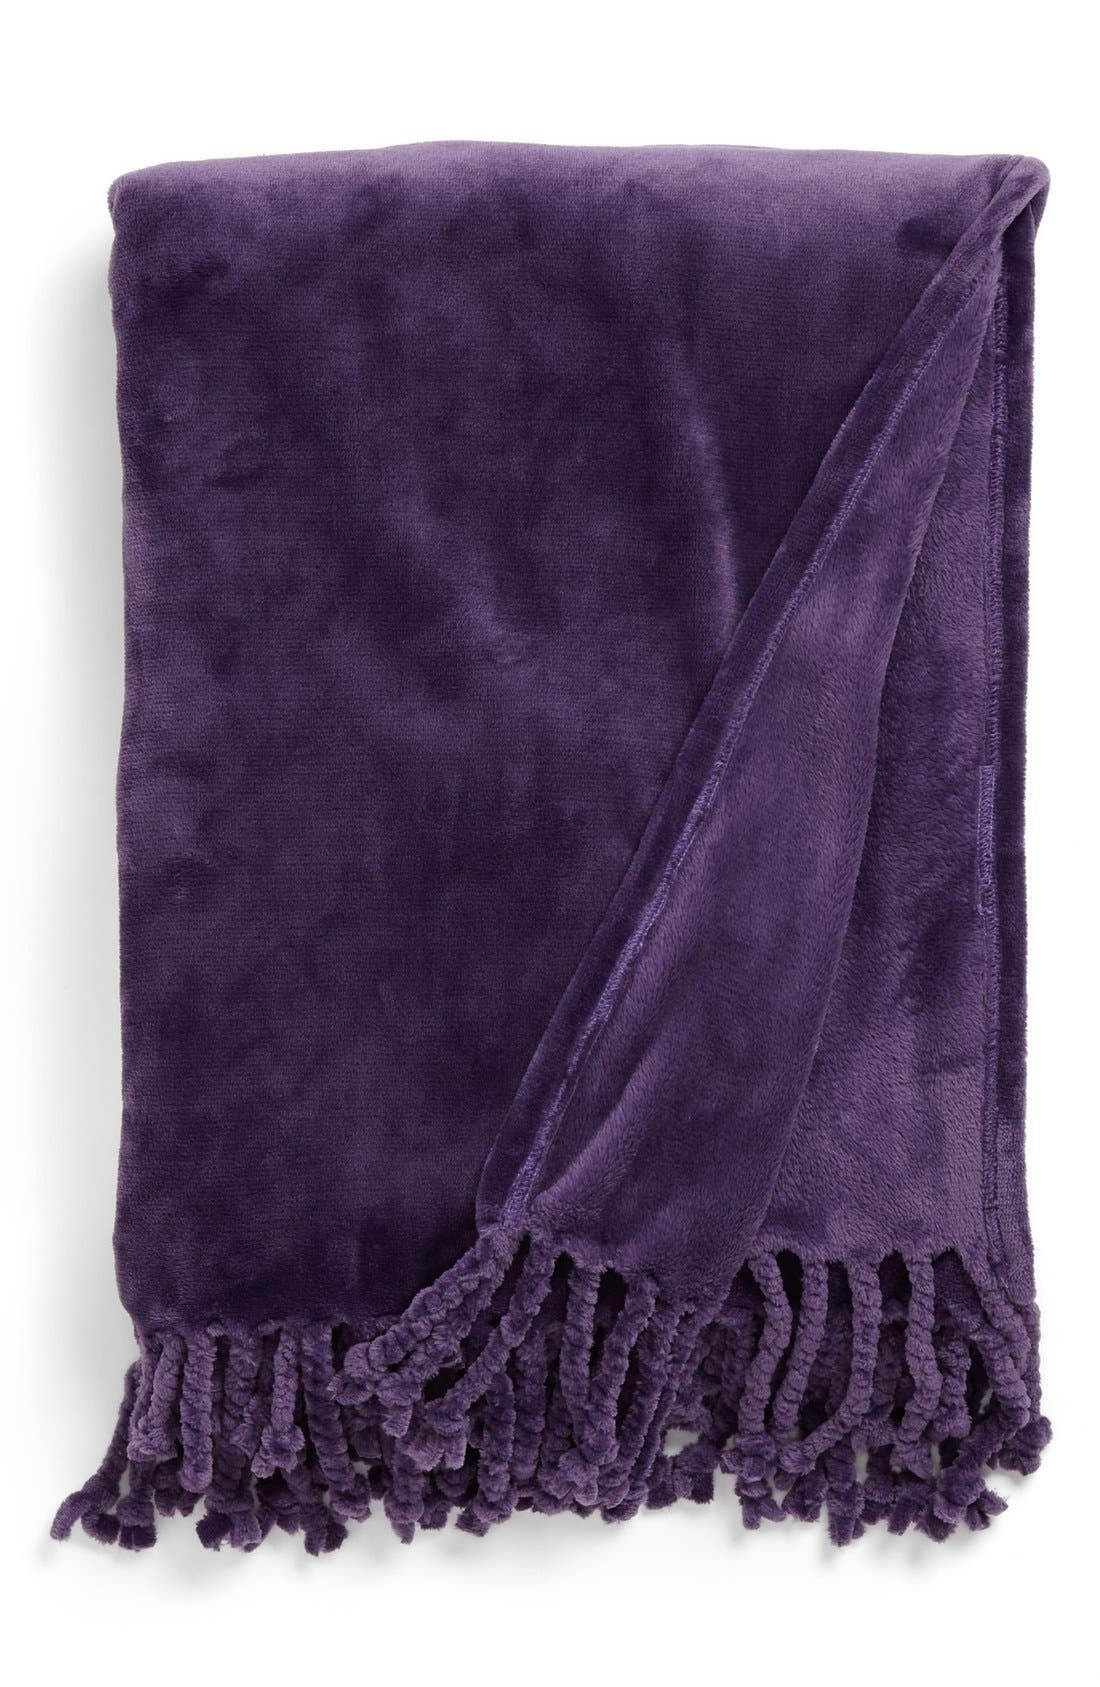 Kennebunk Bliss Plush Throw,                             Main thumbnail 1, color,                             PURPLE KEEPSAKE